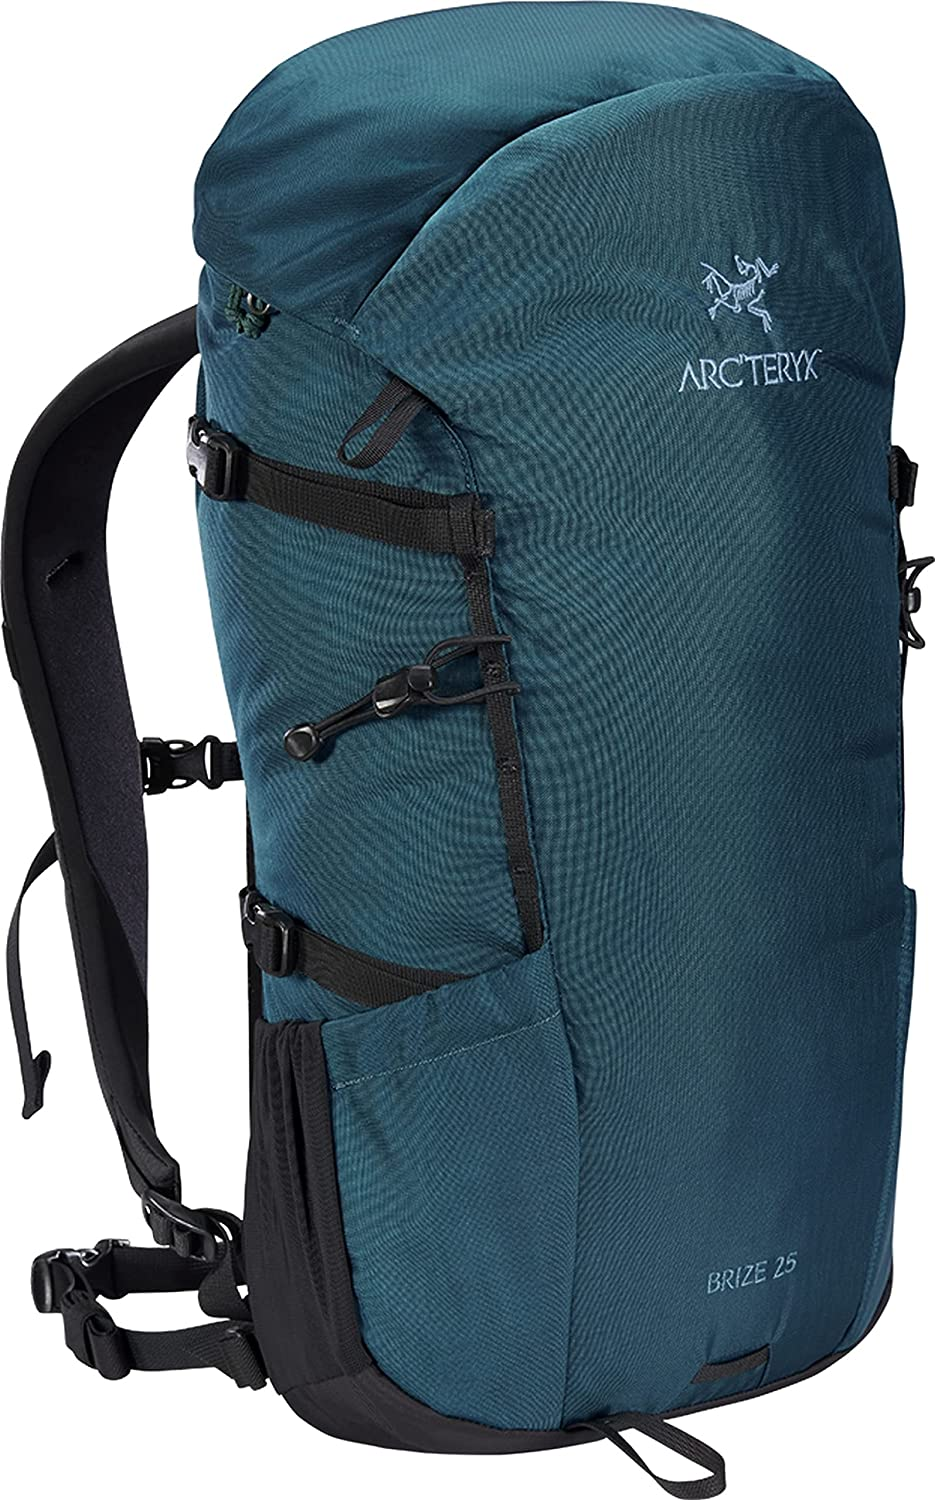 Arc'teryx Brize 25 High Max 72% OFF quality Backpack Daypack Eve Travel for Hiking and